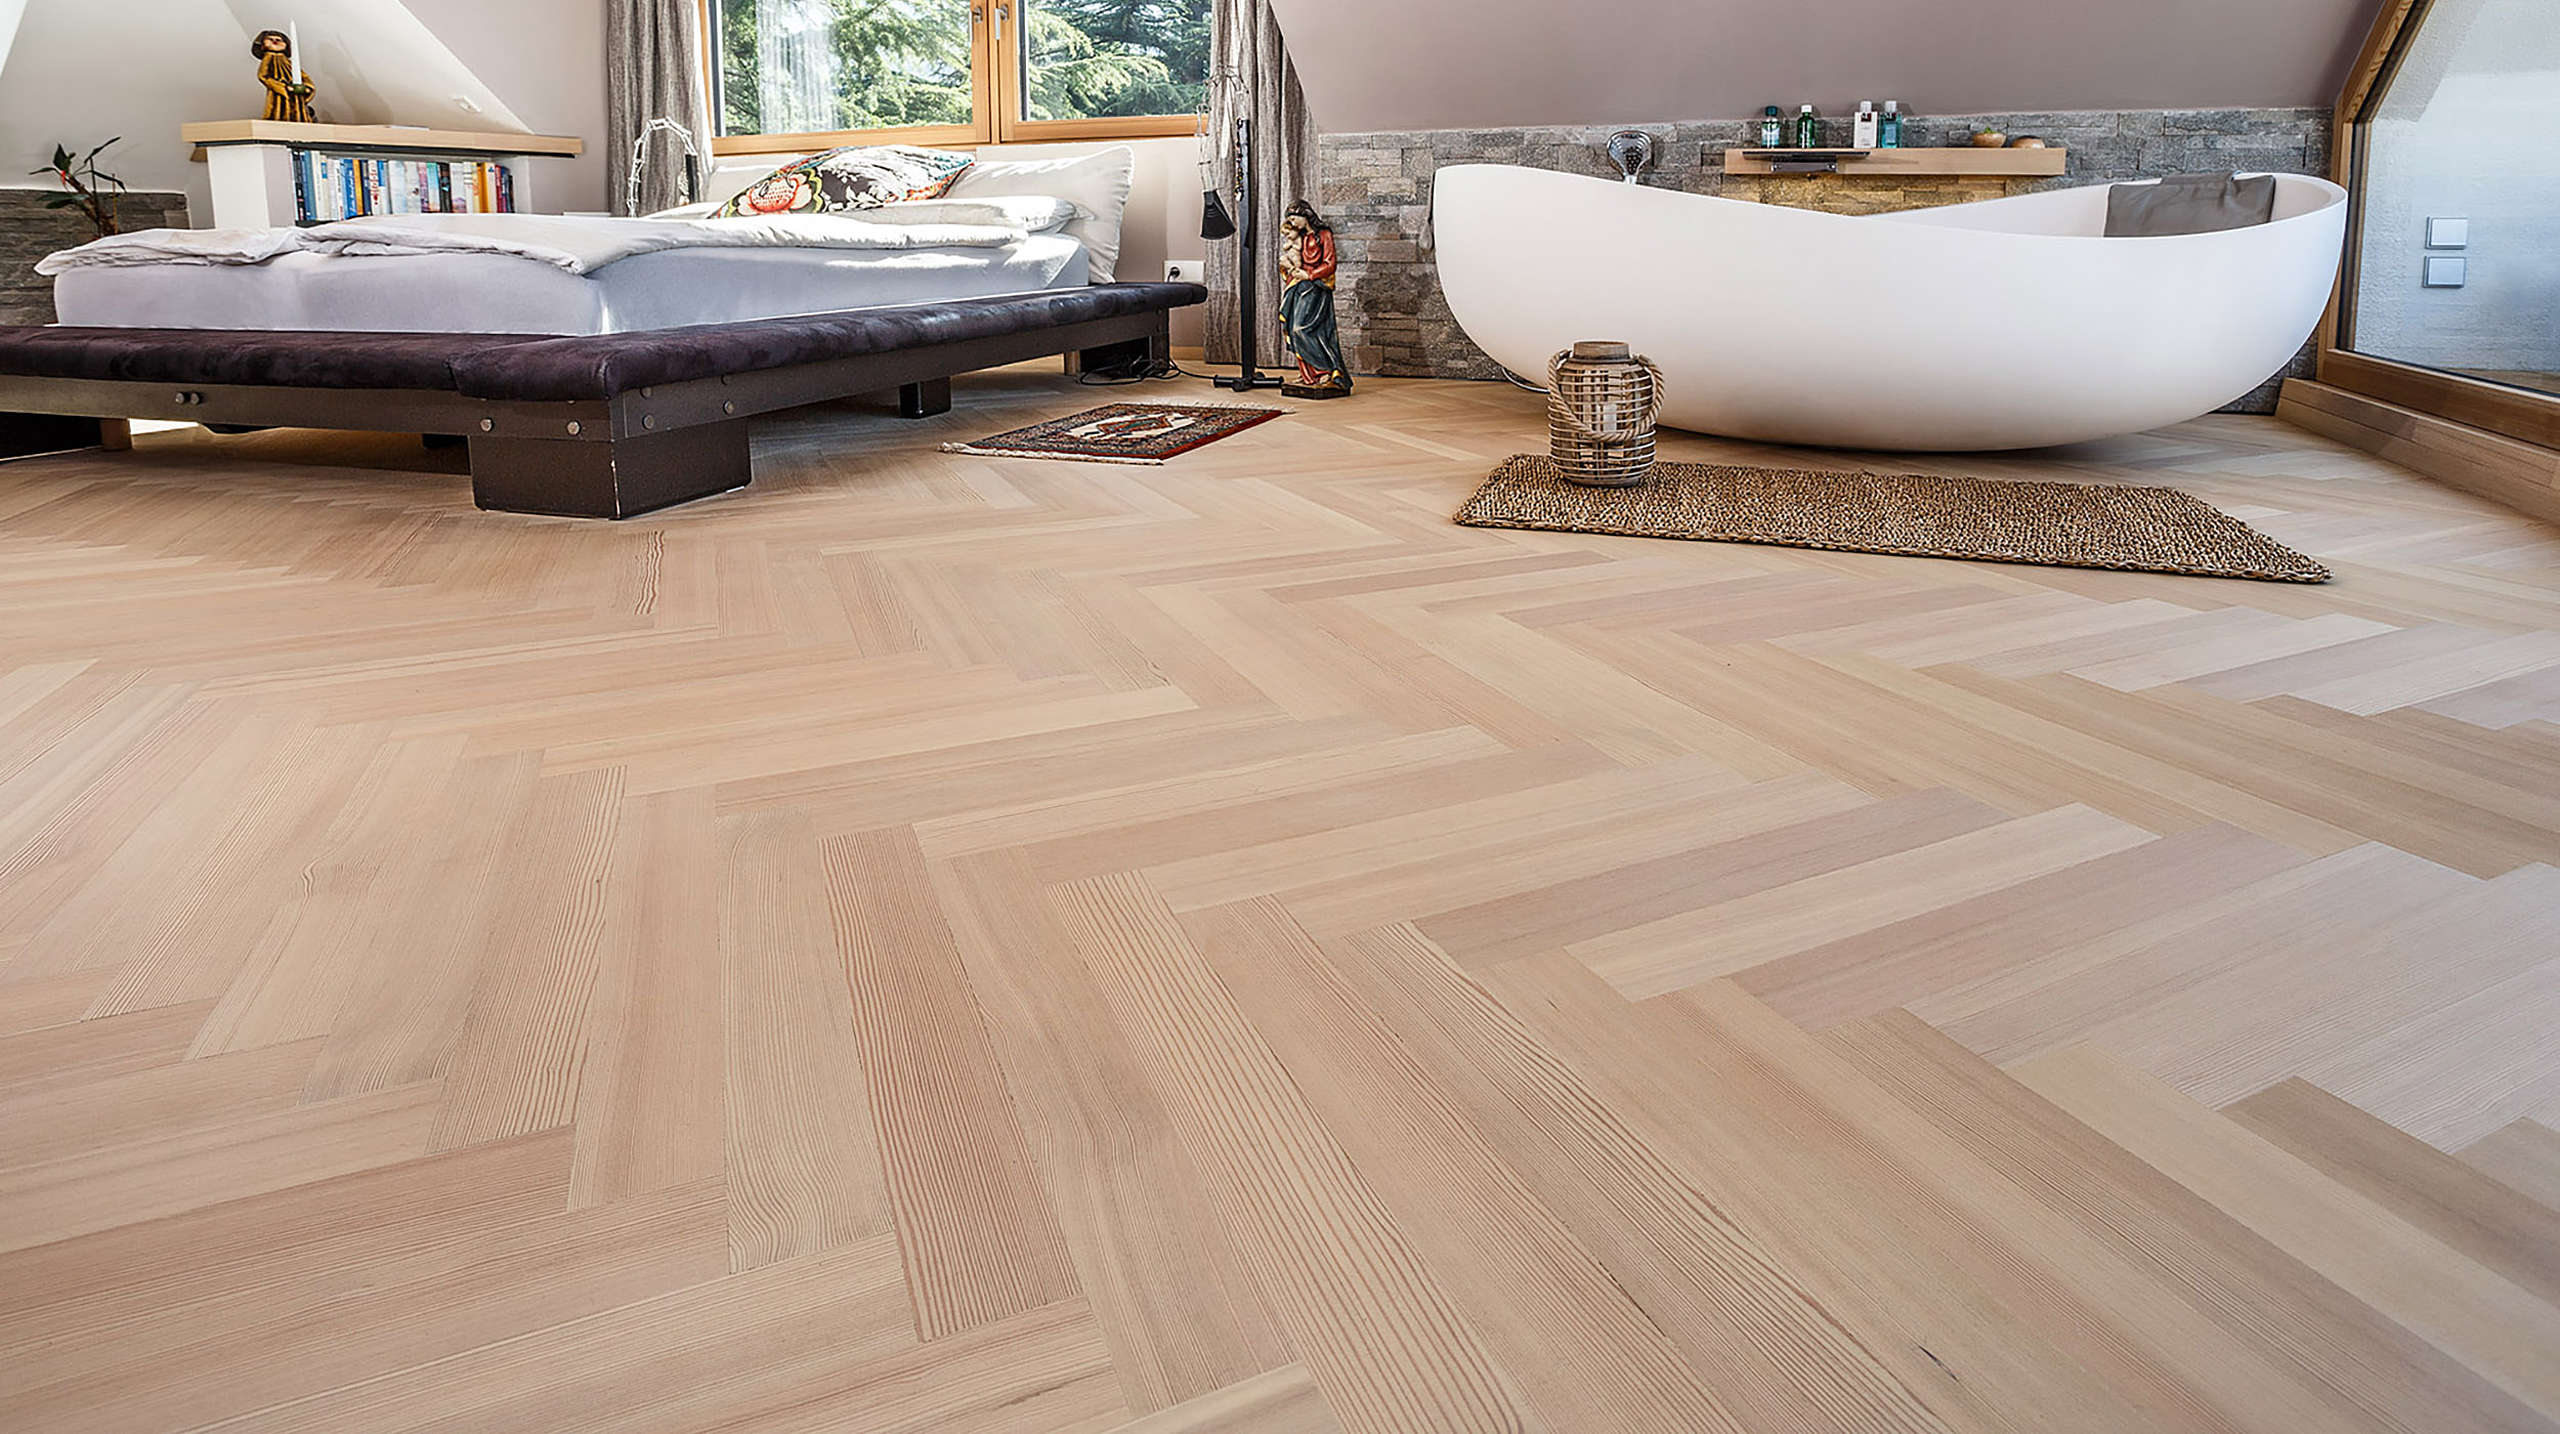 Floor, flooring, herringbone parquet, larch, indoors, wood